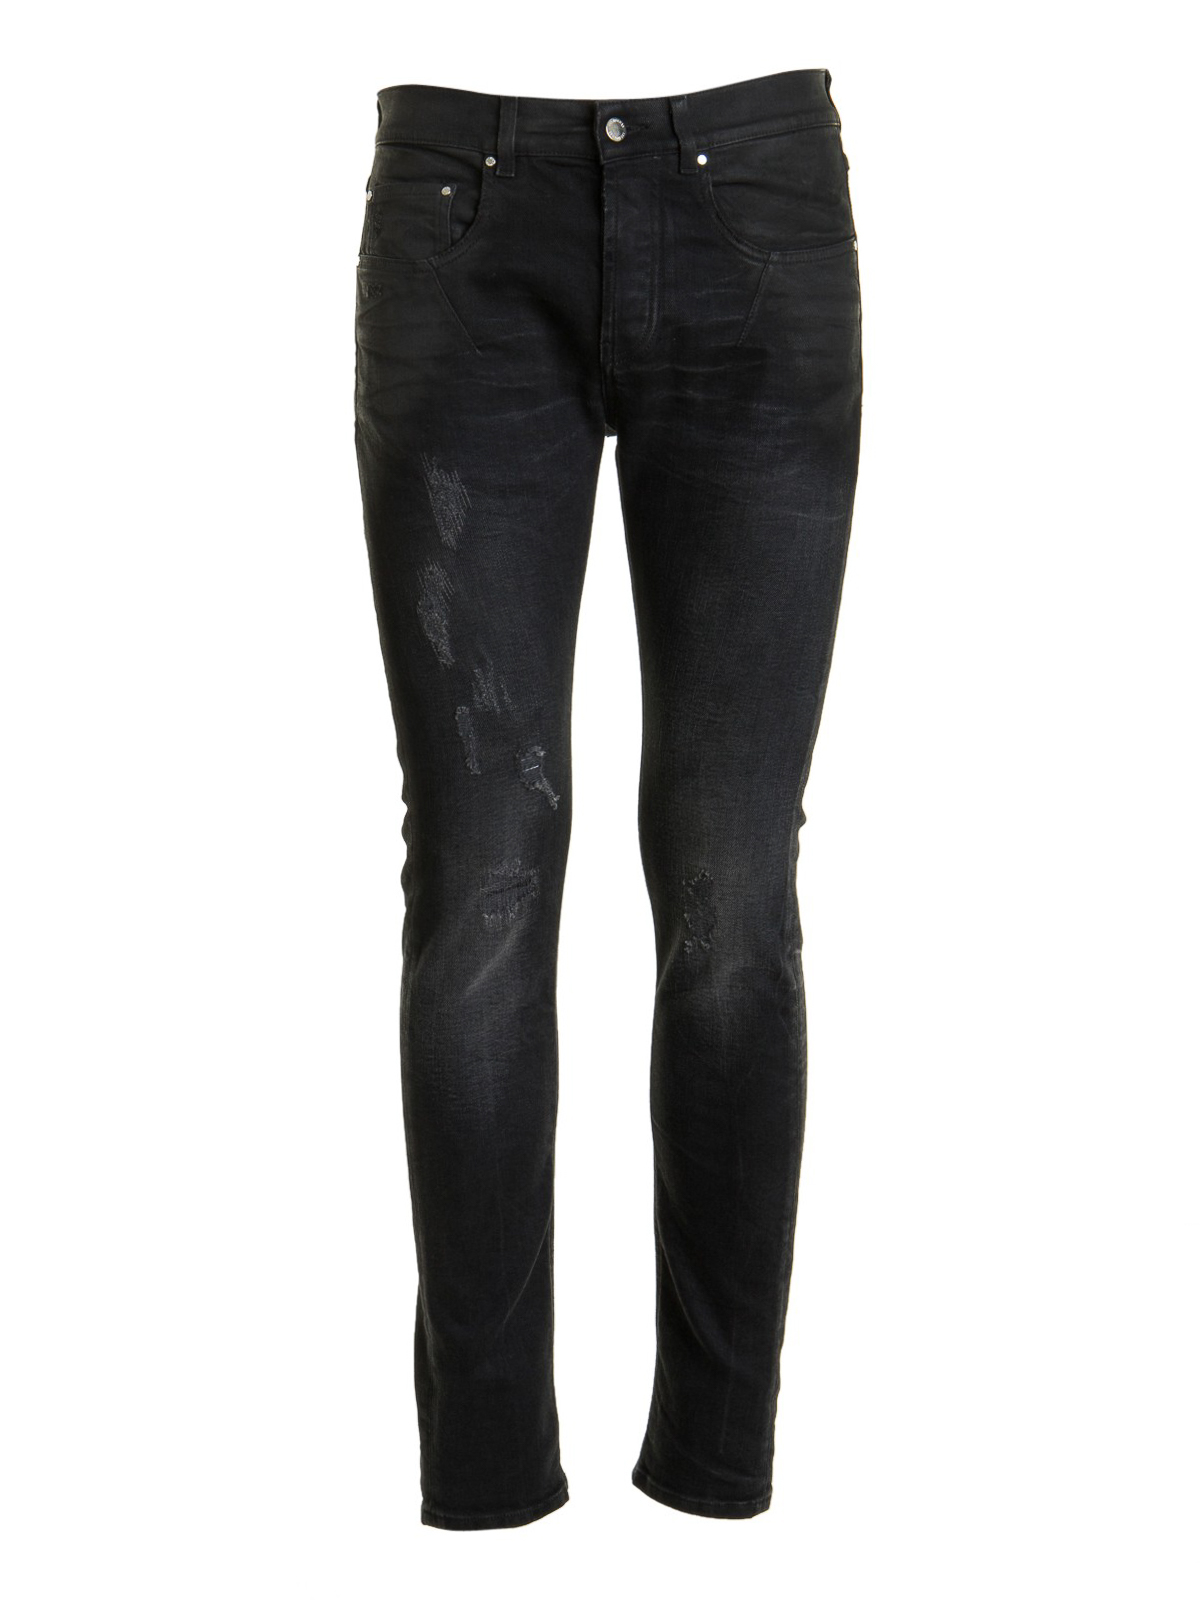 Les Hommes DISTRESSED EFFECT SKINNY JEANS